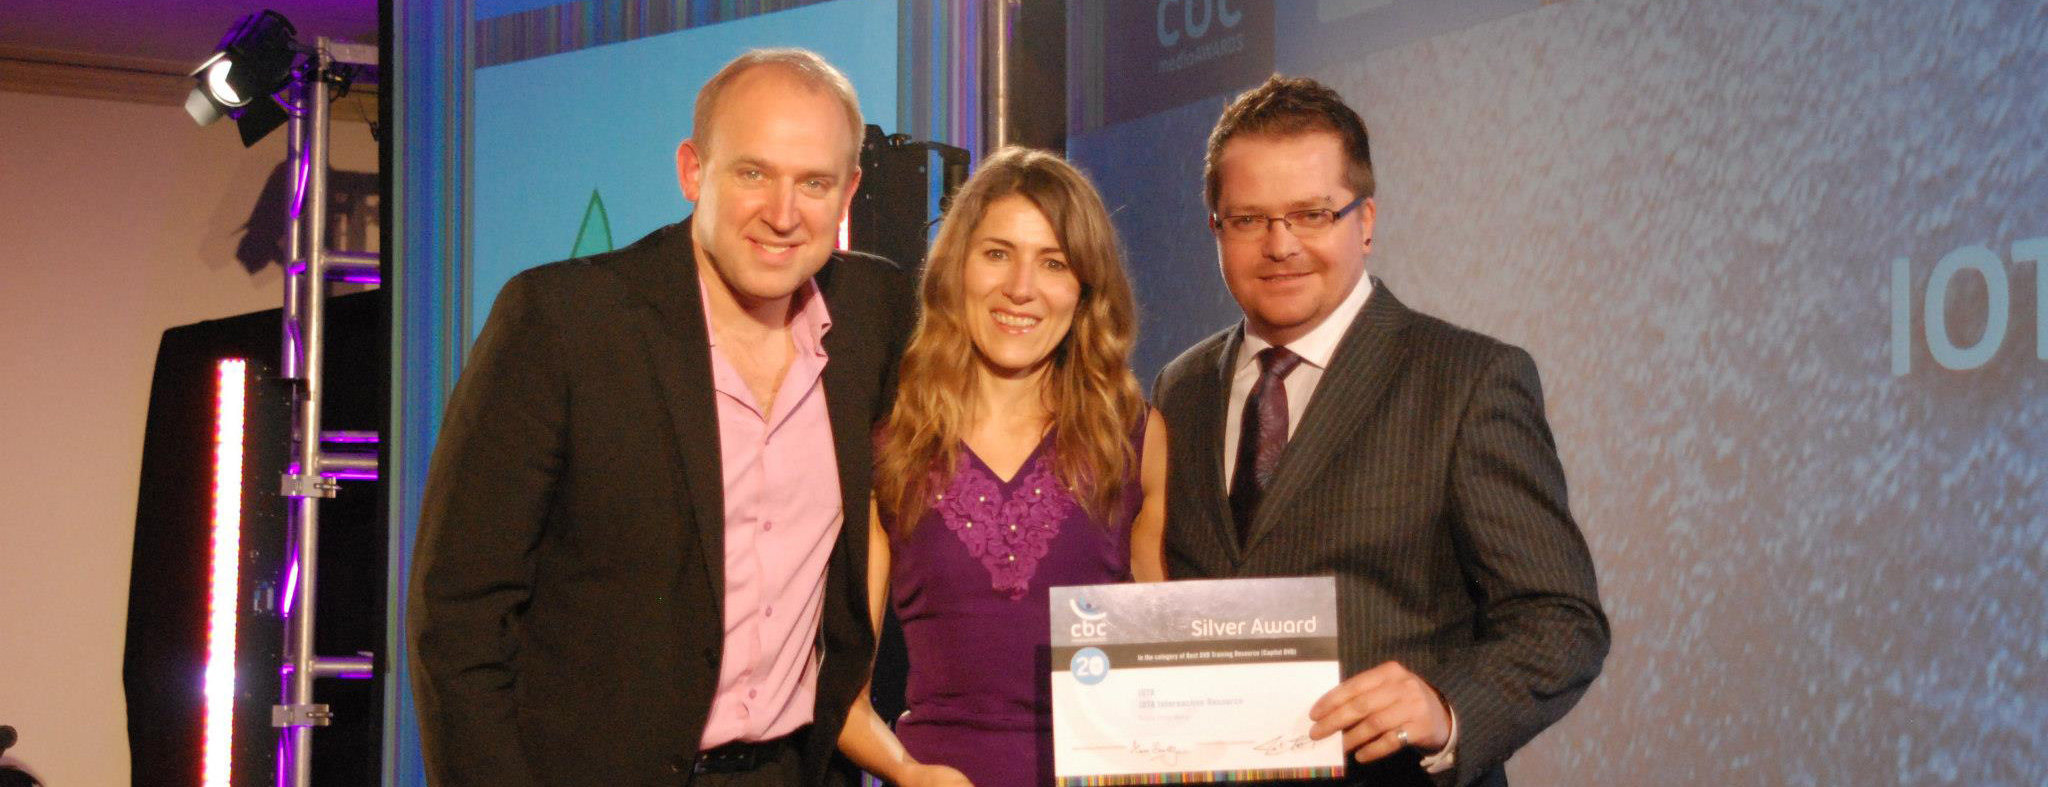 Christian Media Awards 2012